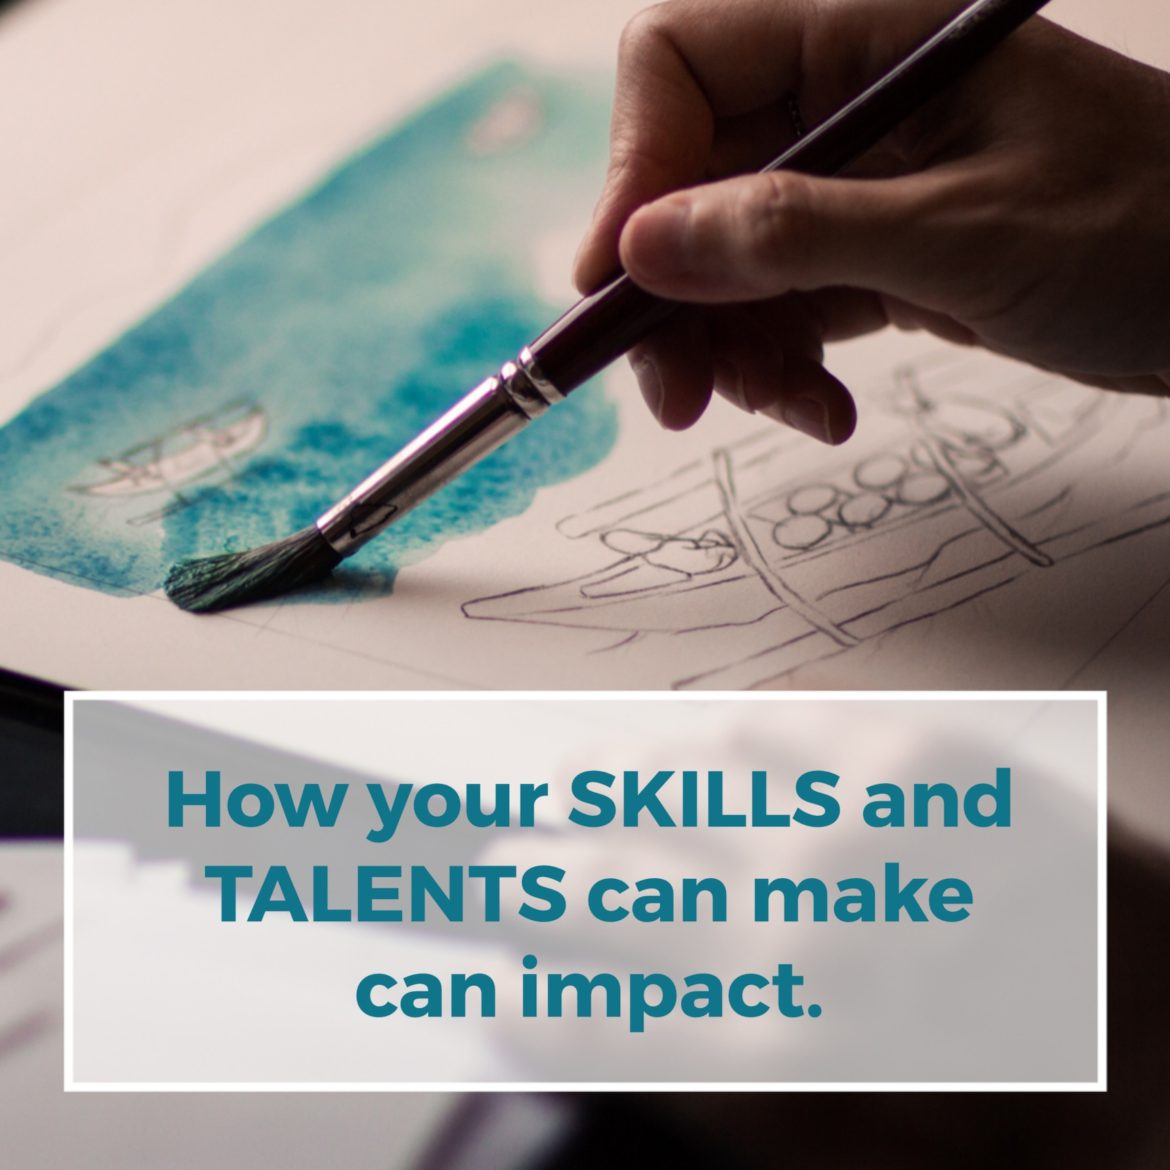 How your talents can make an impact image